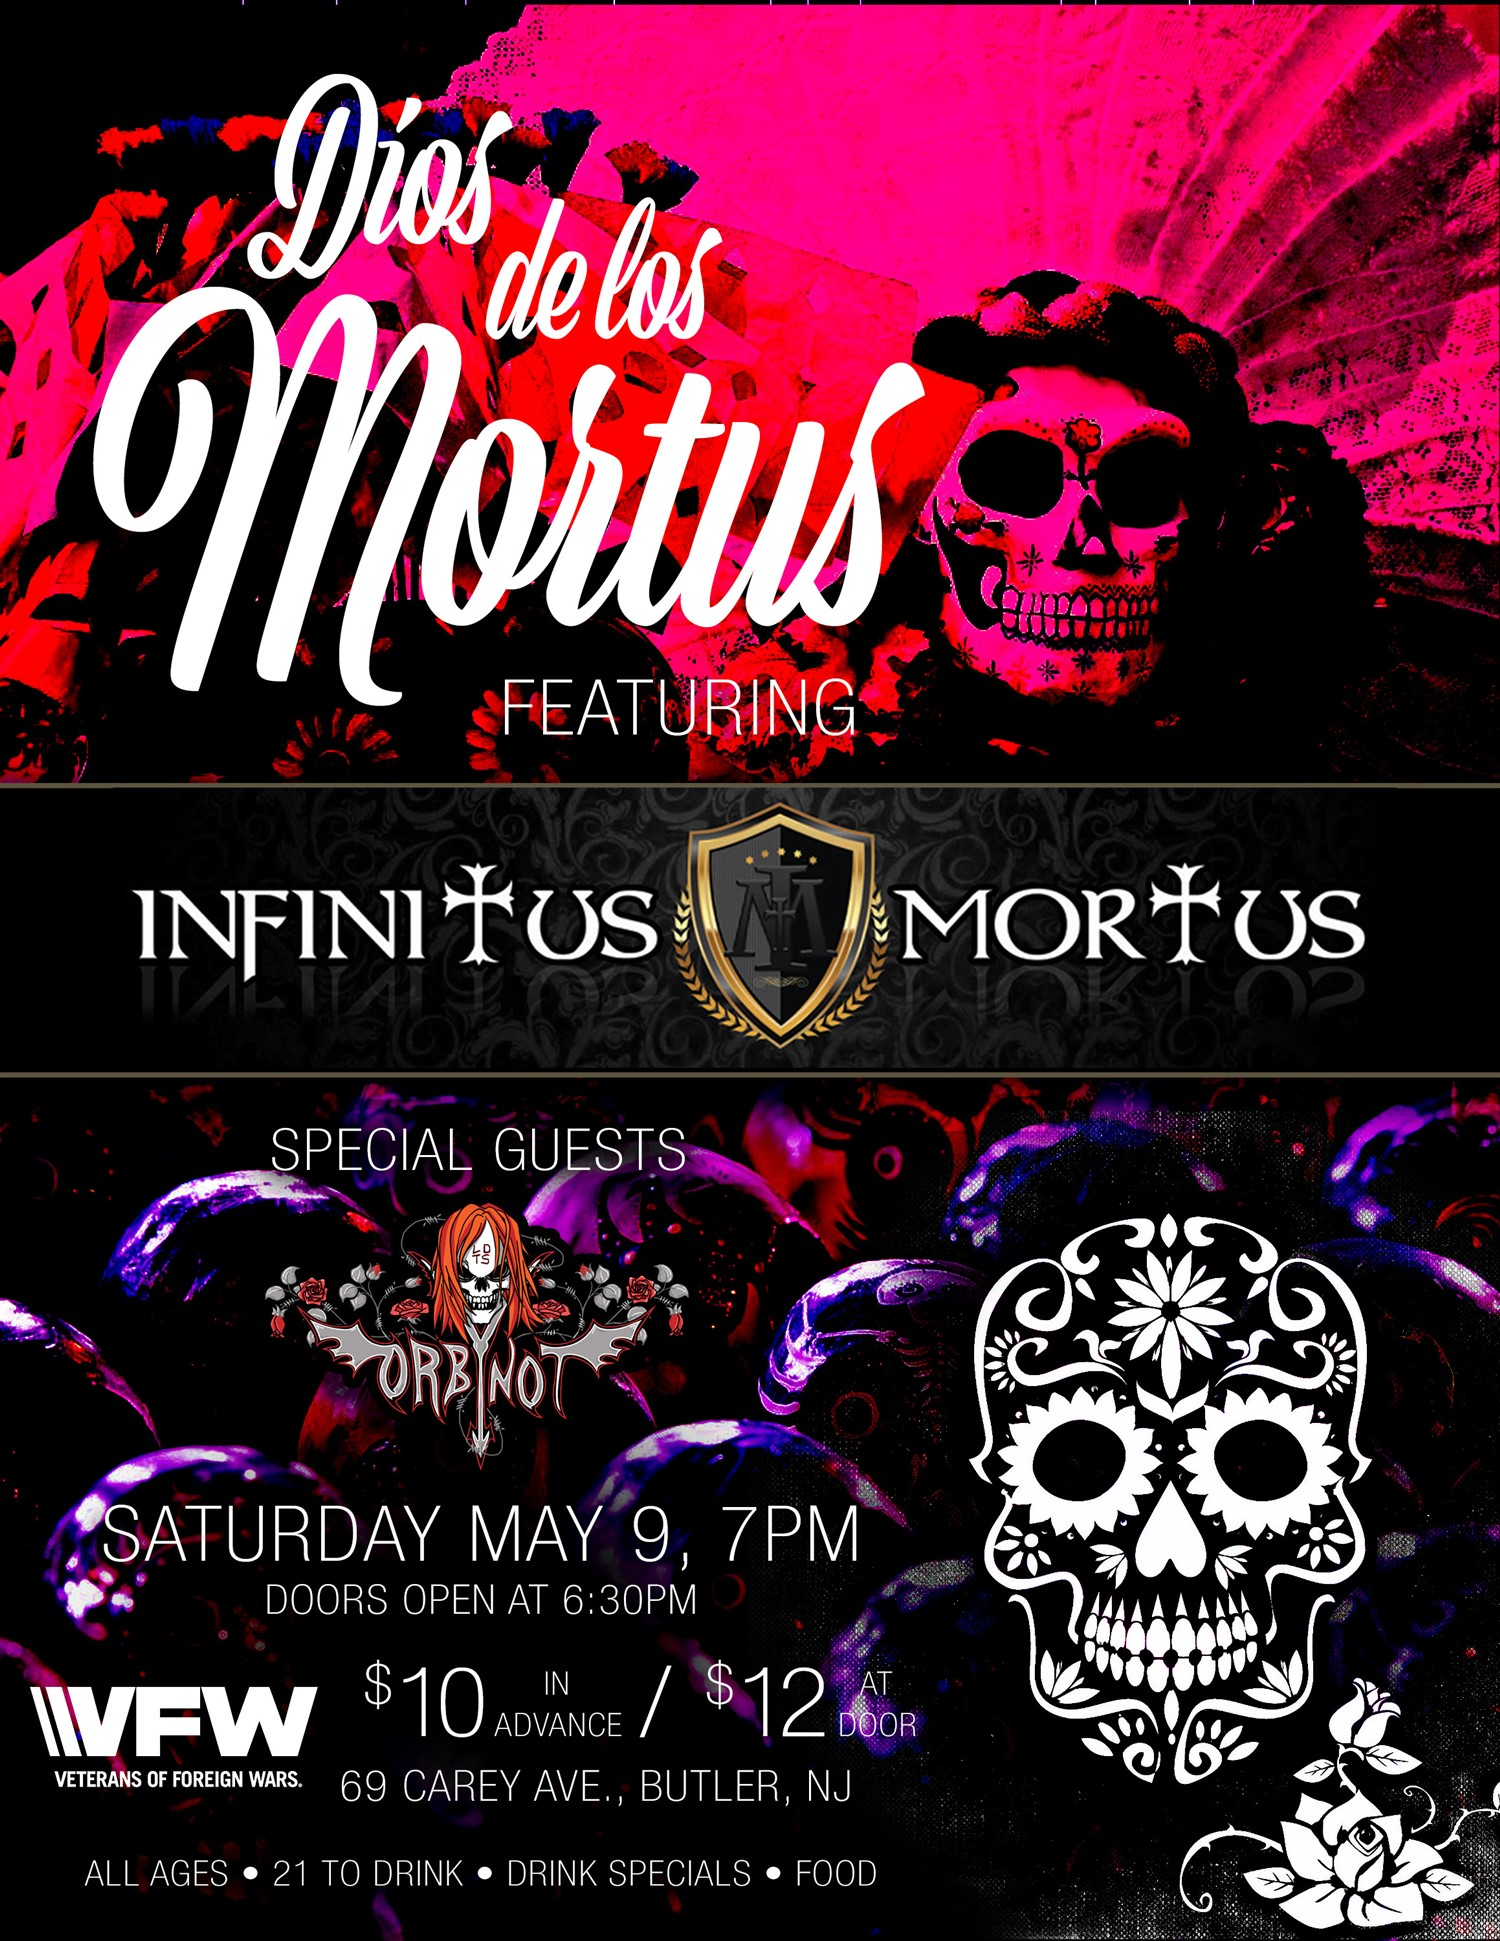 Dios de los Mortus VFW Show on May 09, 18:30@VFW Butler NJ - Buy tickets and Get information on www.infinitusmortus.com